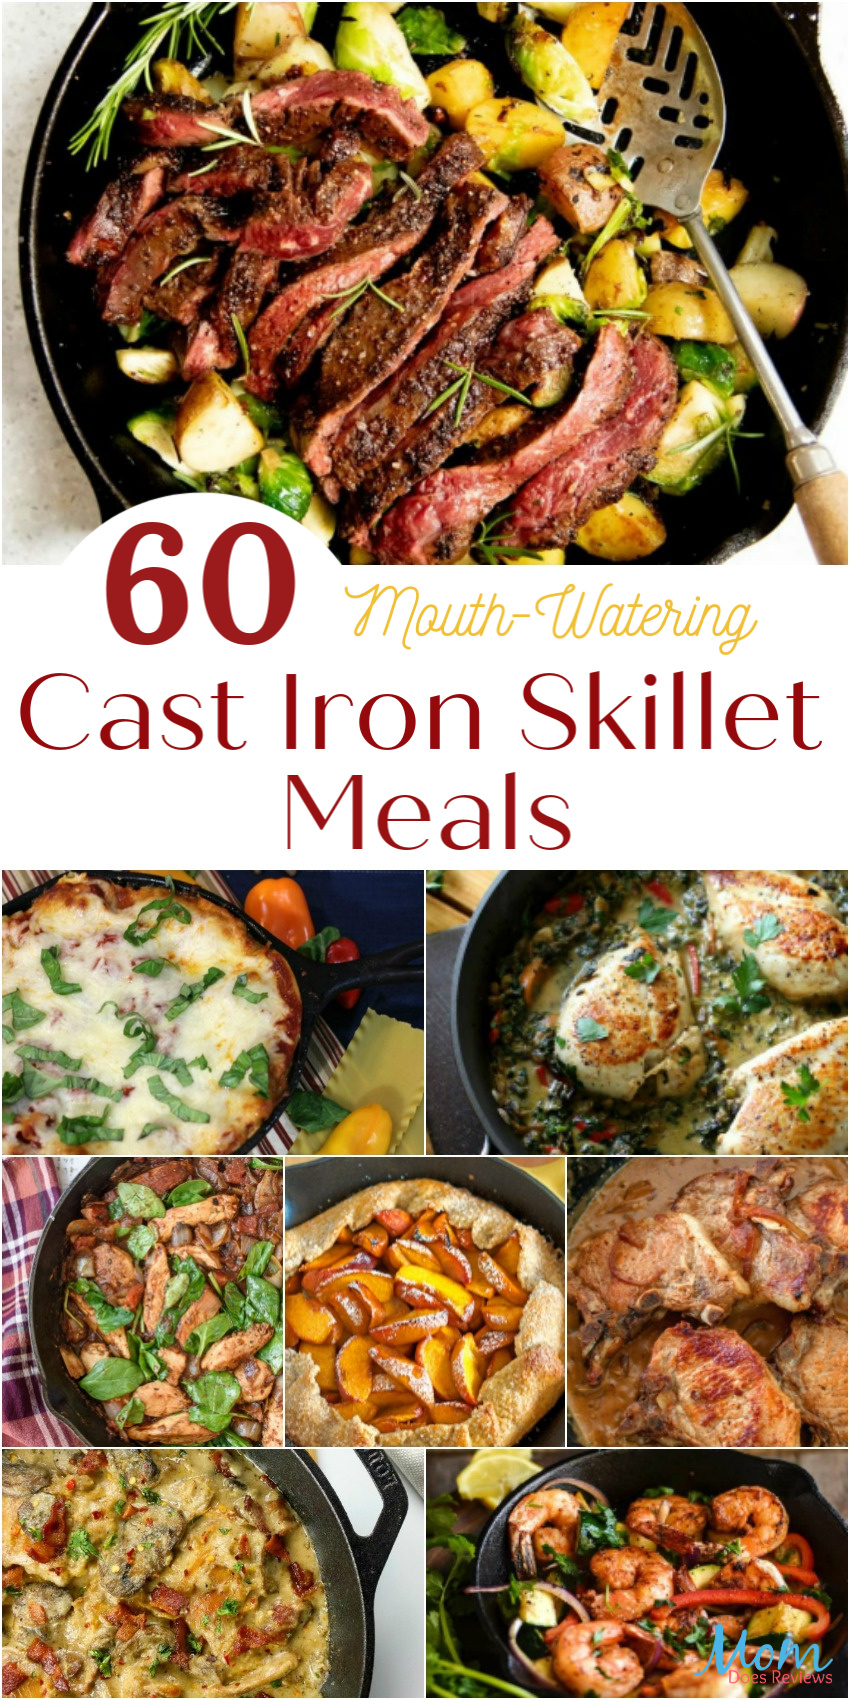 60 Mouth-Watering Cast Iron Skillet Meals You Need to Make for Your Family #recipes #skilletrecipes #food #foodie #getinmybelly